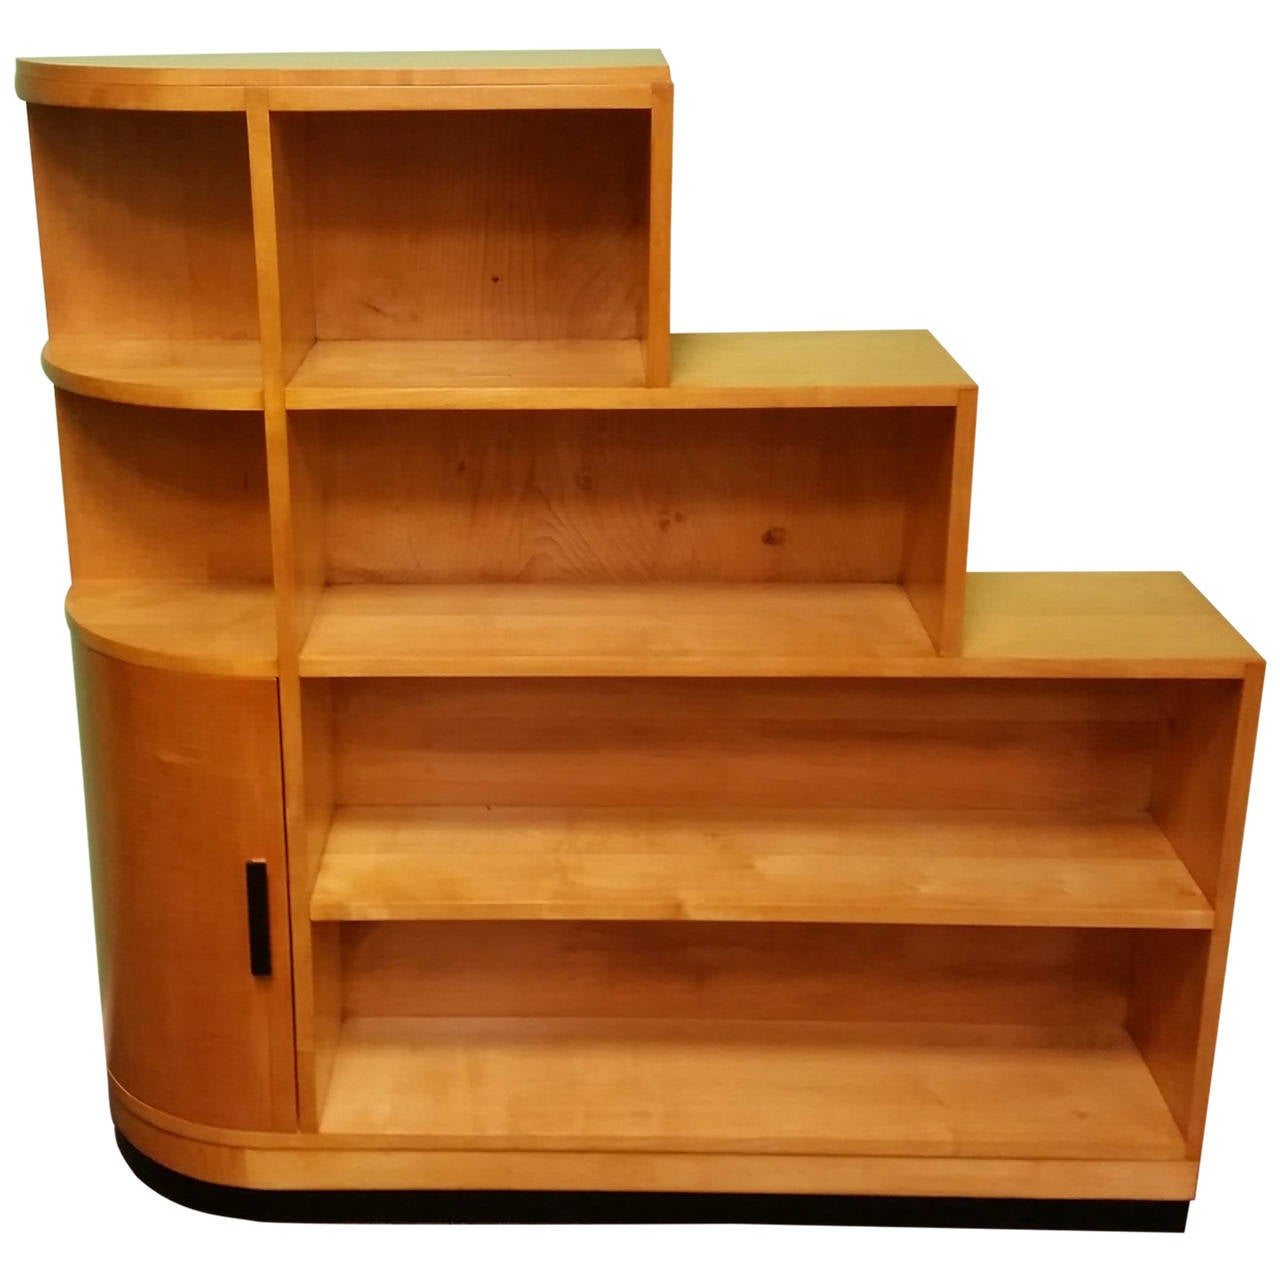 Art deco bookcase at 1stdibs for Art deco furniture